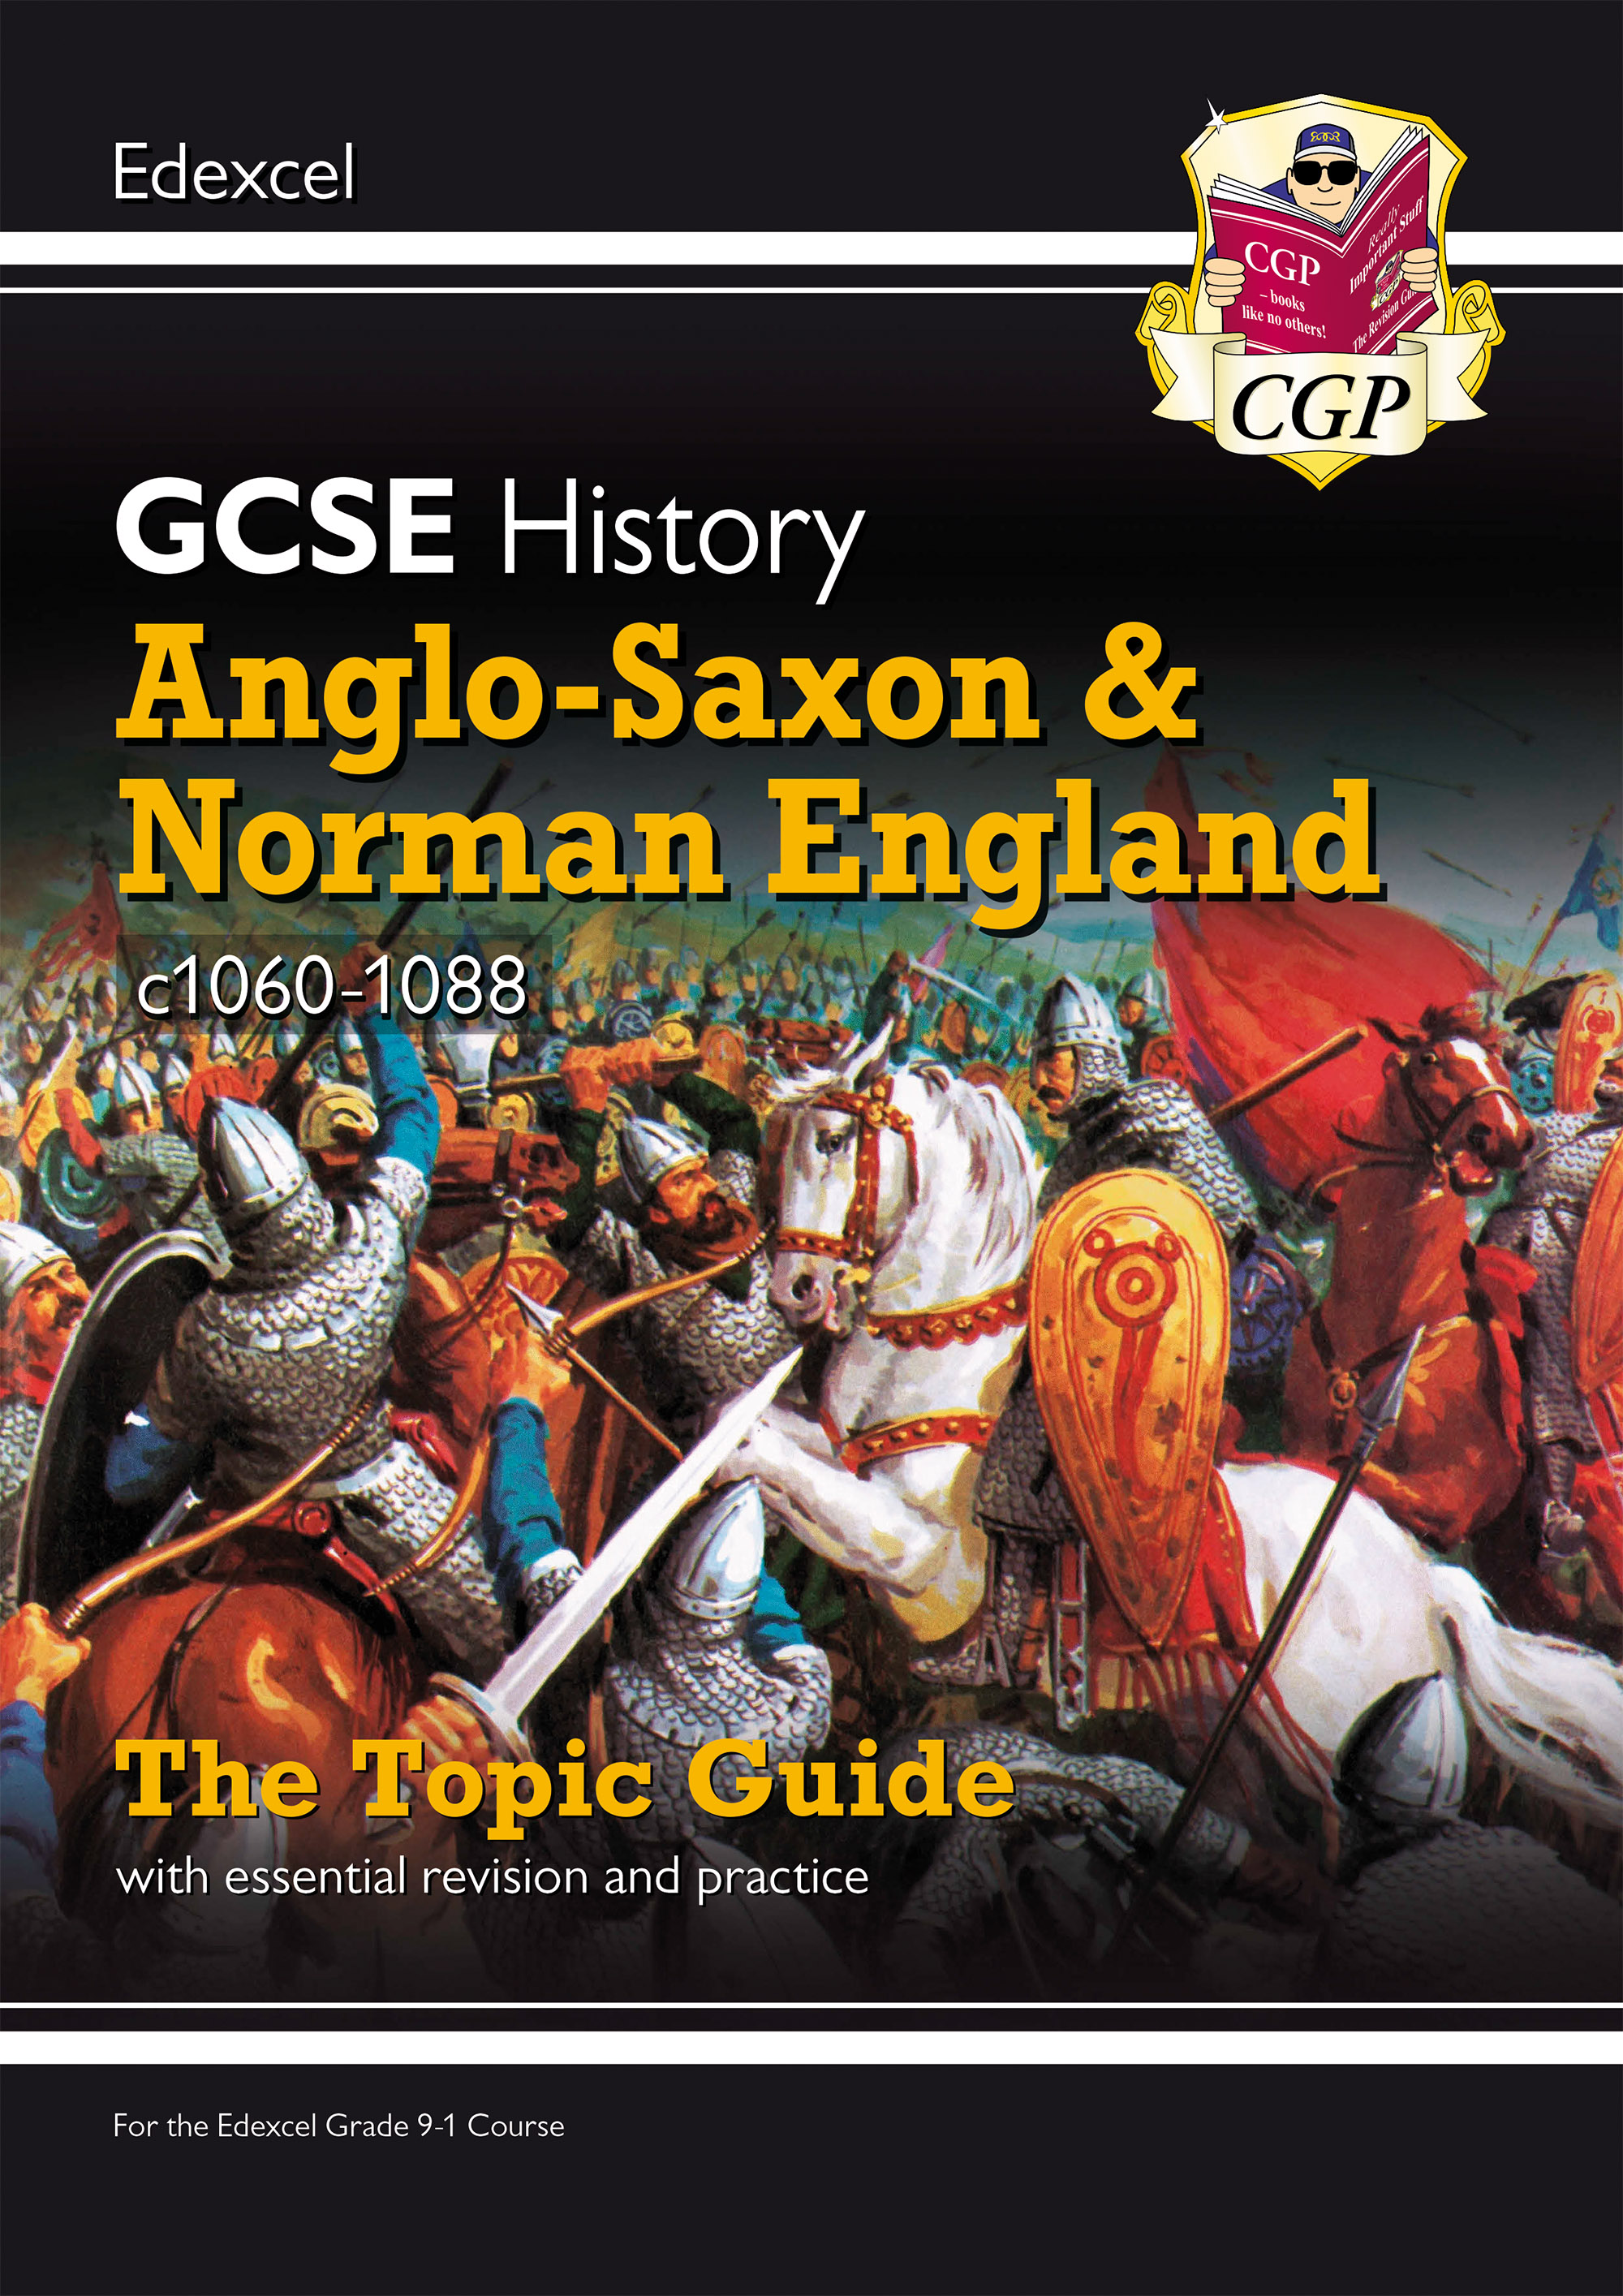 HEANO41D - Grade 9-1 GCSE History Edexcel Topic Guide - Anglo-Saxon and Norman England, c1060-88 Onl